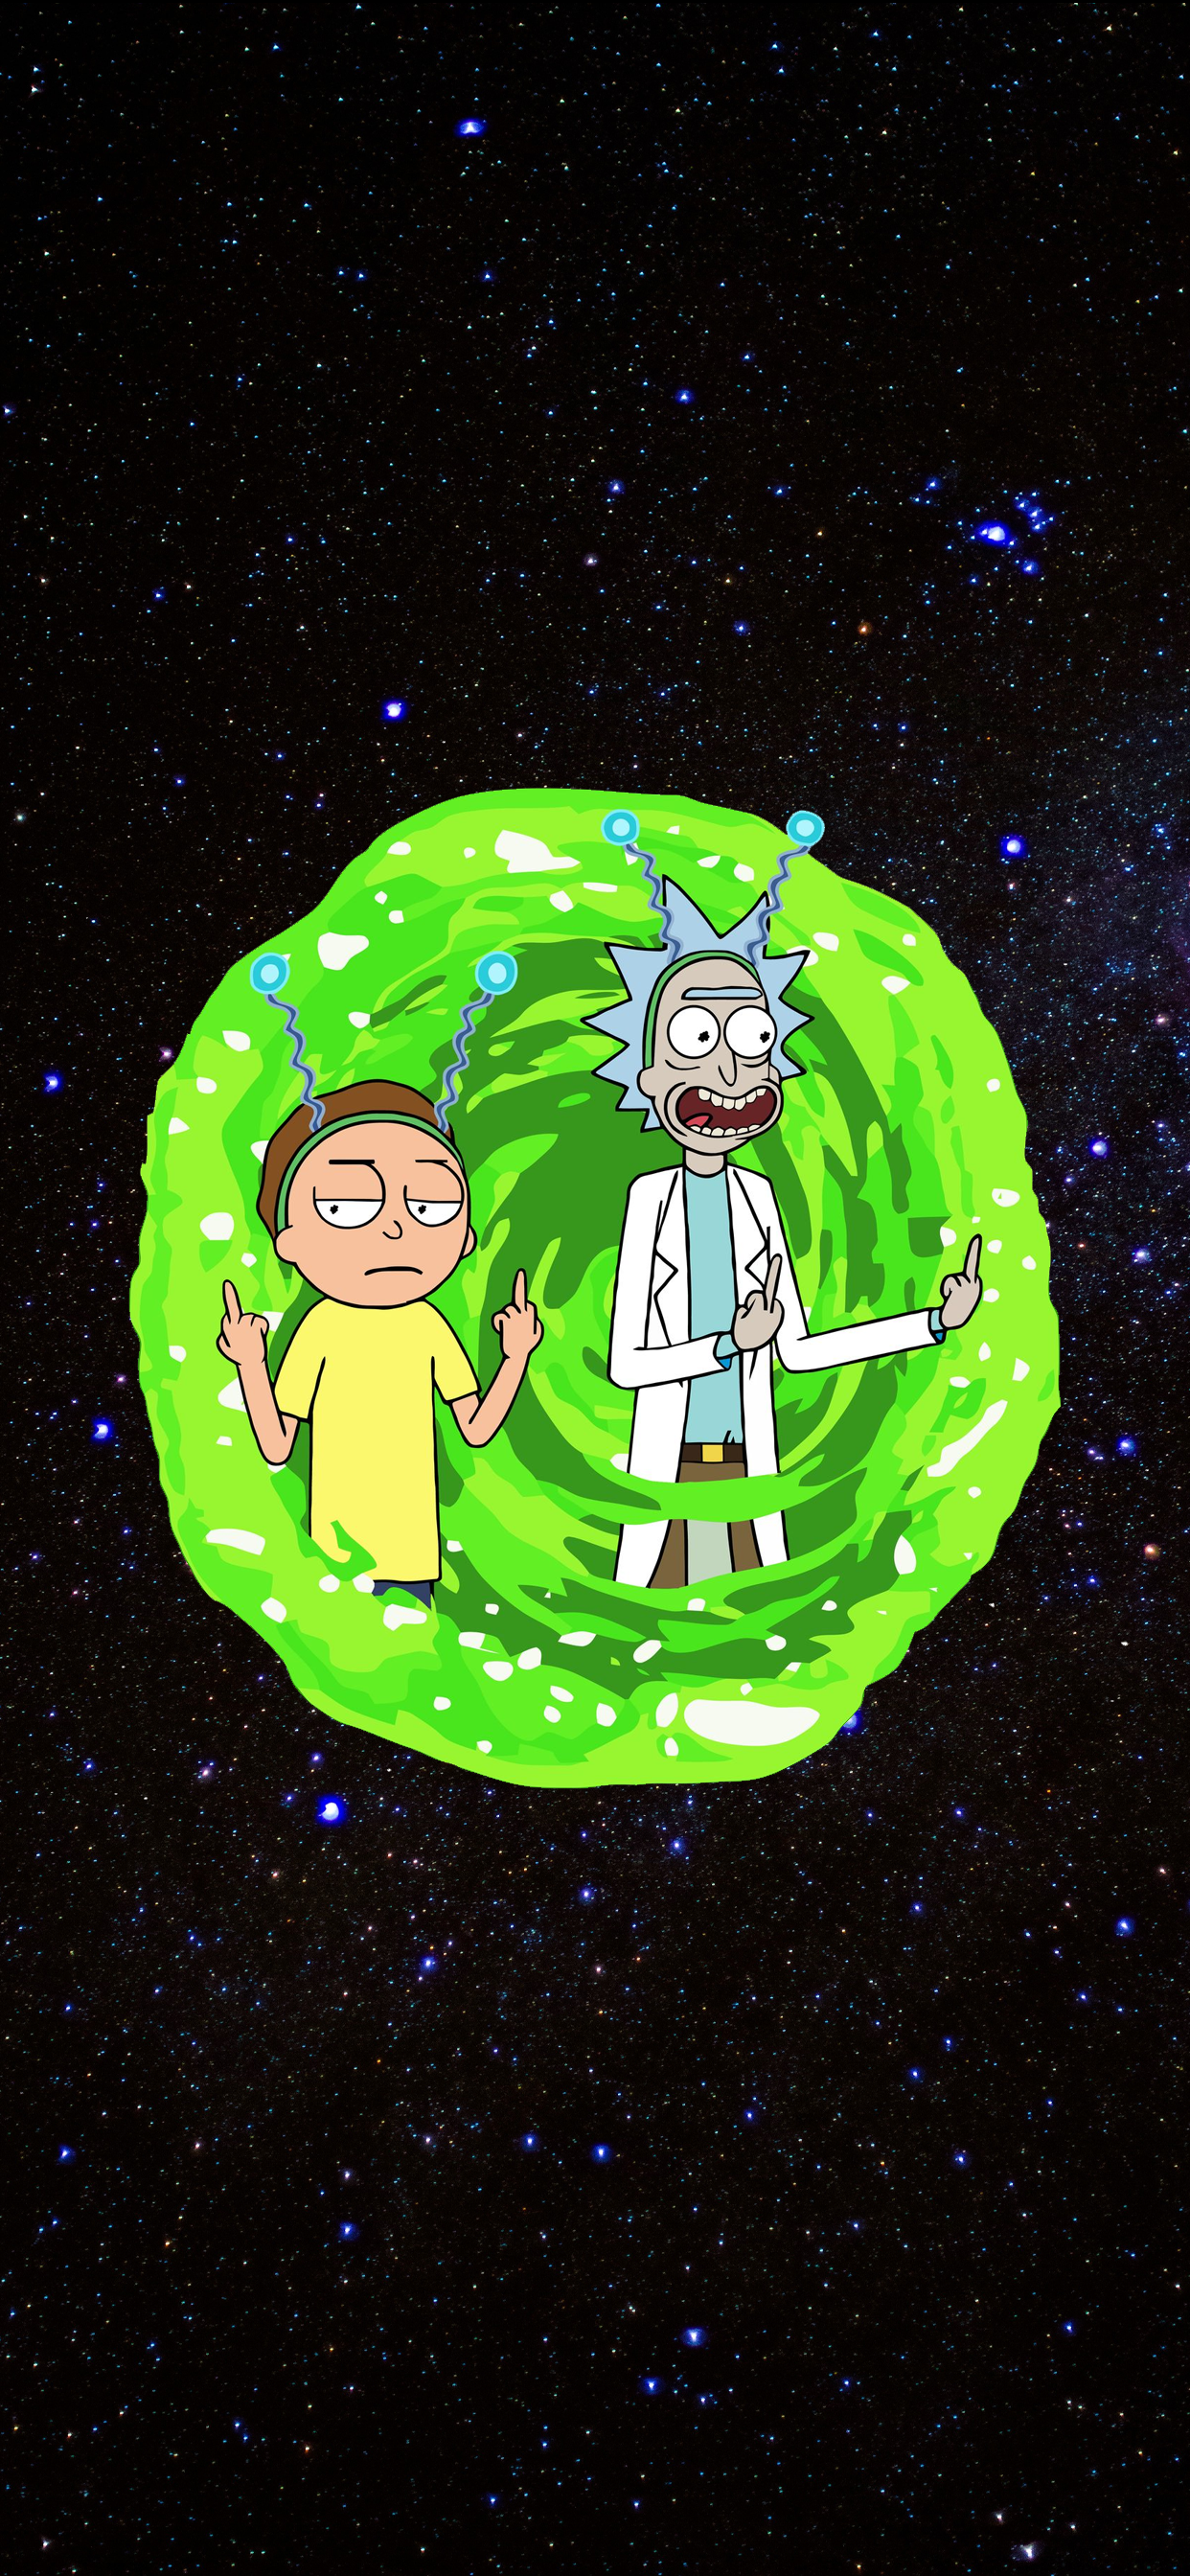 Rick And Morty Wallpaper Iphone : morty, wallpaper, iphone, HEROSCREEN:, Morty, Phone, Wallpaper, Collection, Iphone, Morty,, Poster,, Stickers